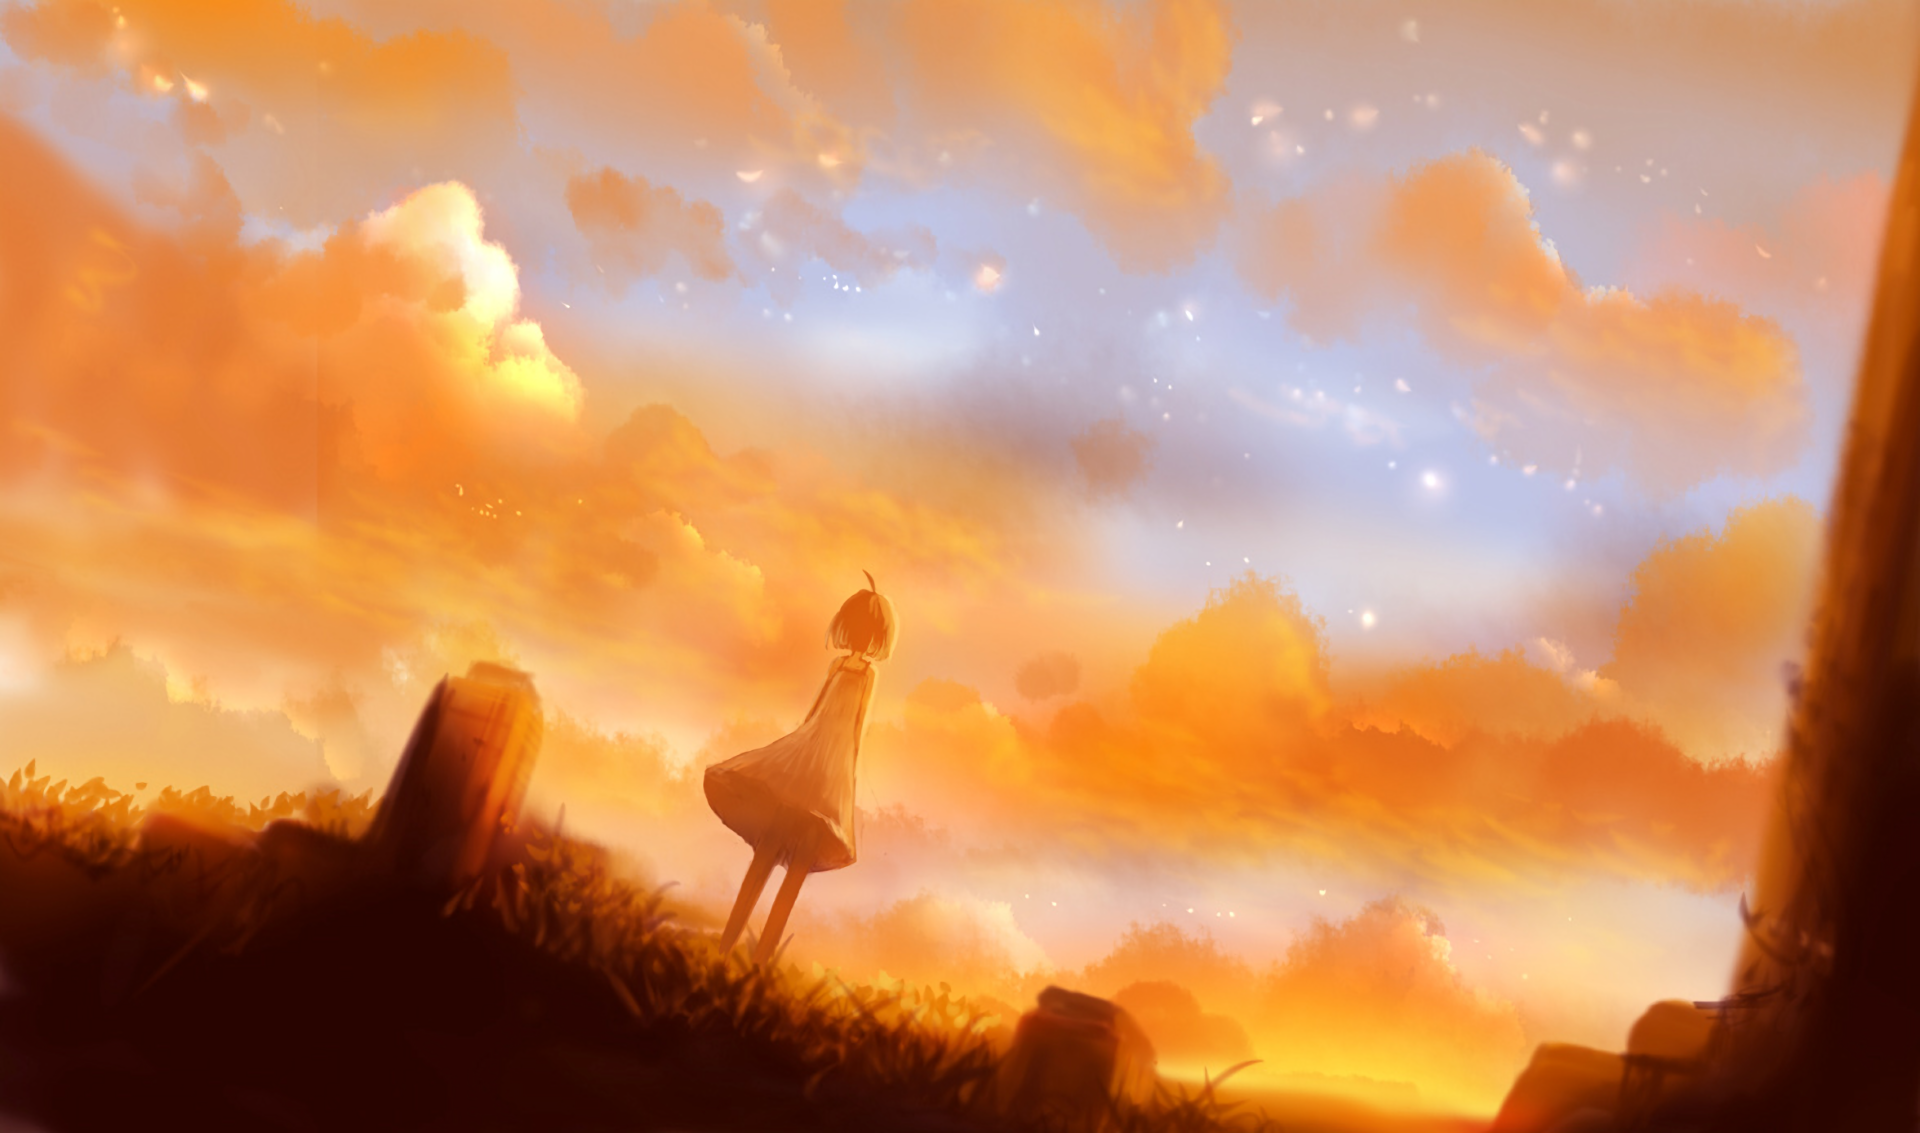 Wallpapers ID:721171